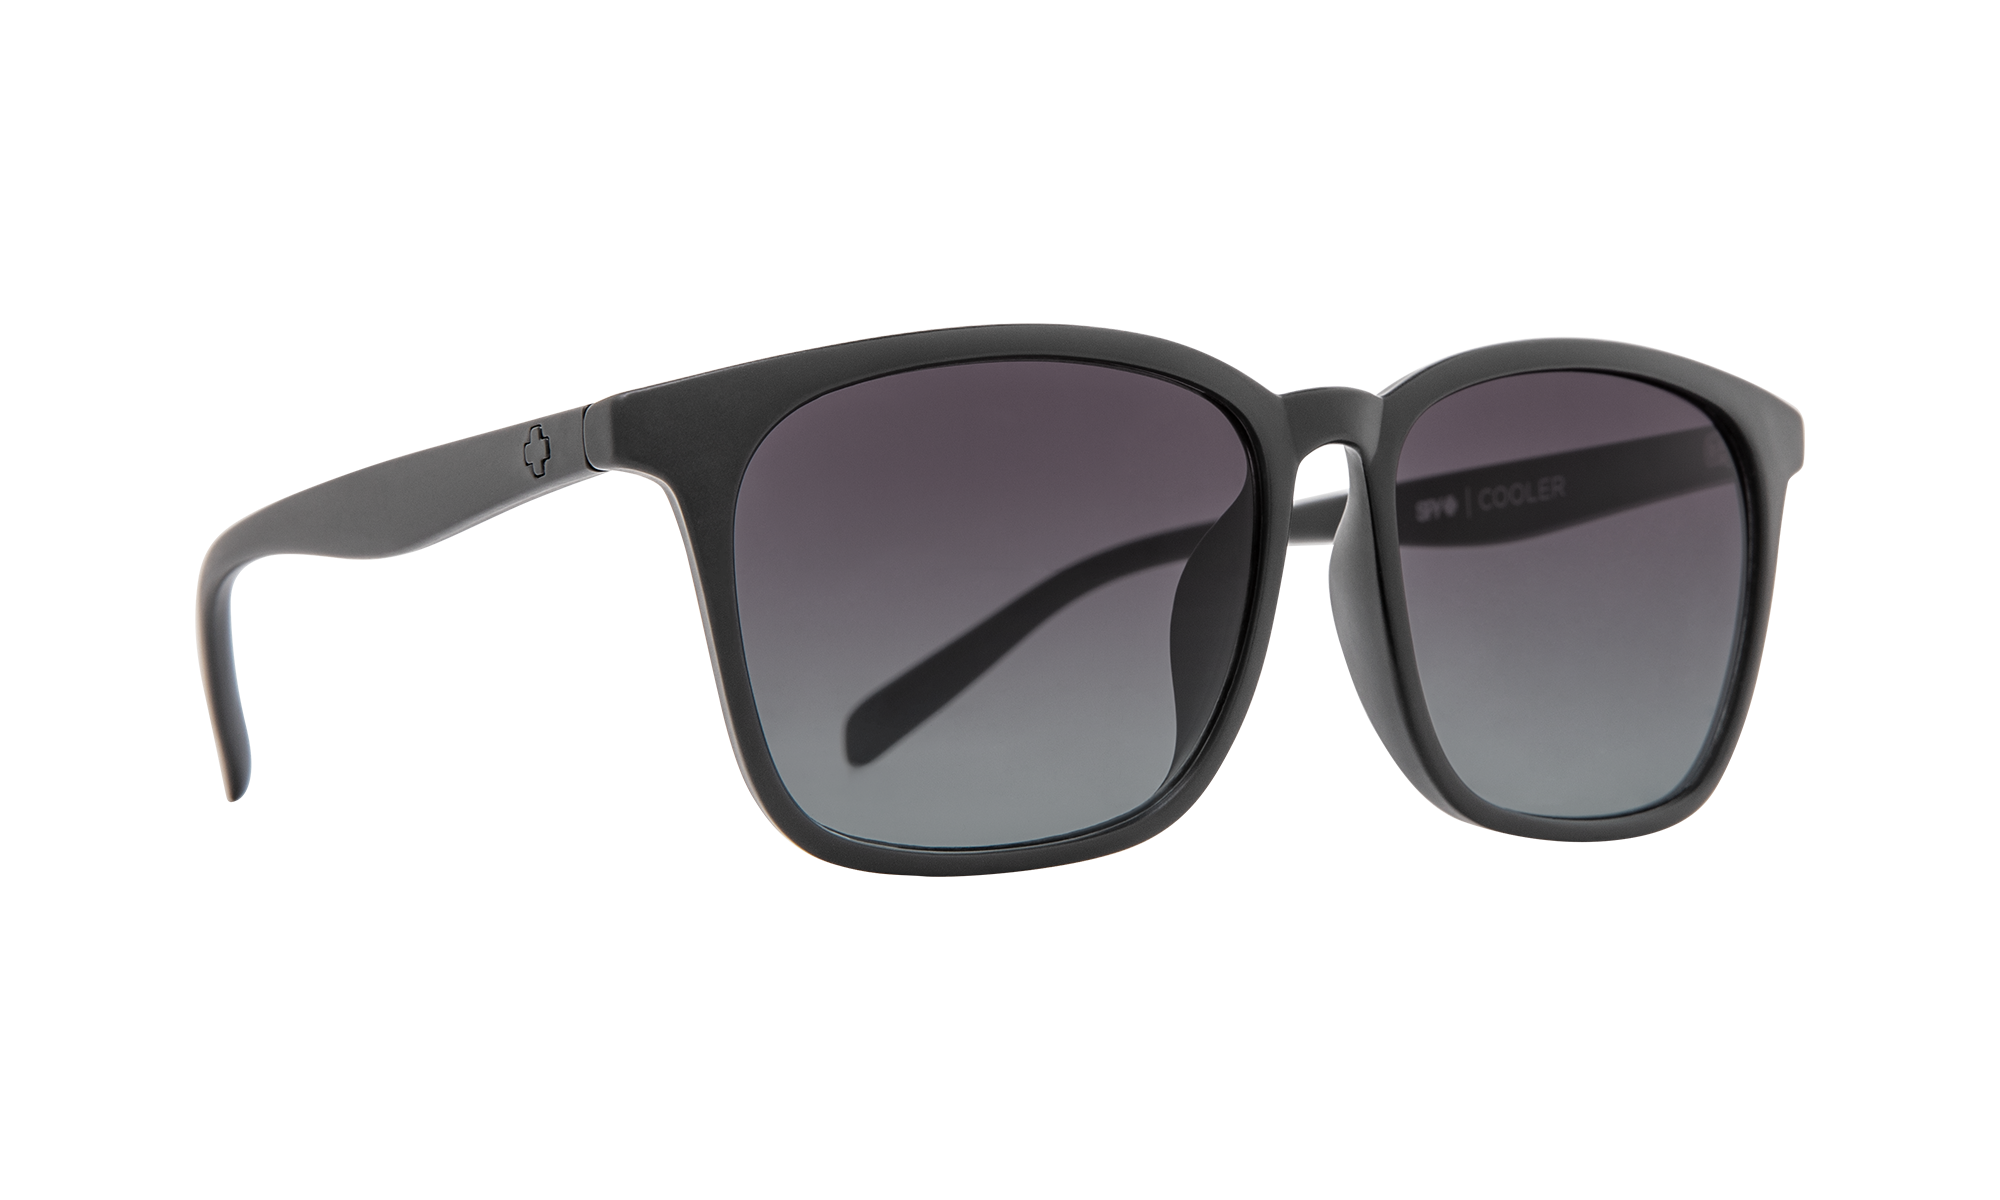 Spy - Cooler 55mm Matte Black Sunglasses / Ocean Fade Lenses